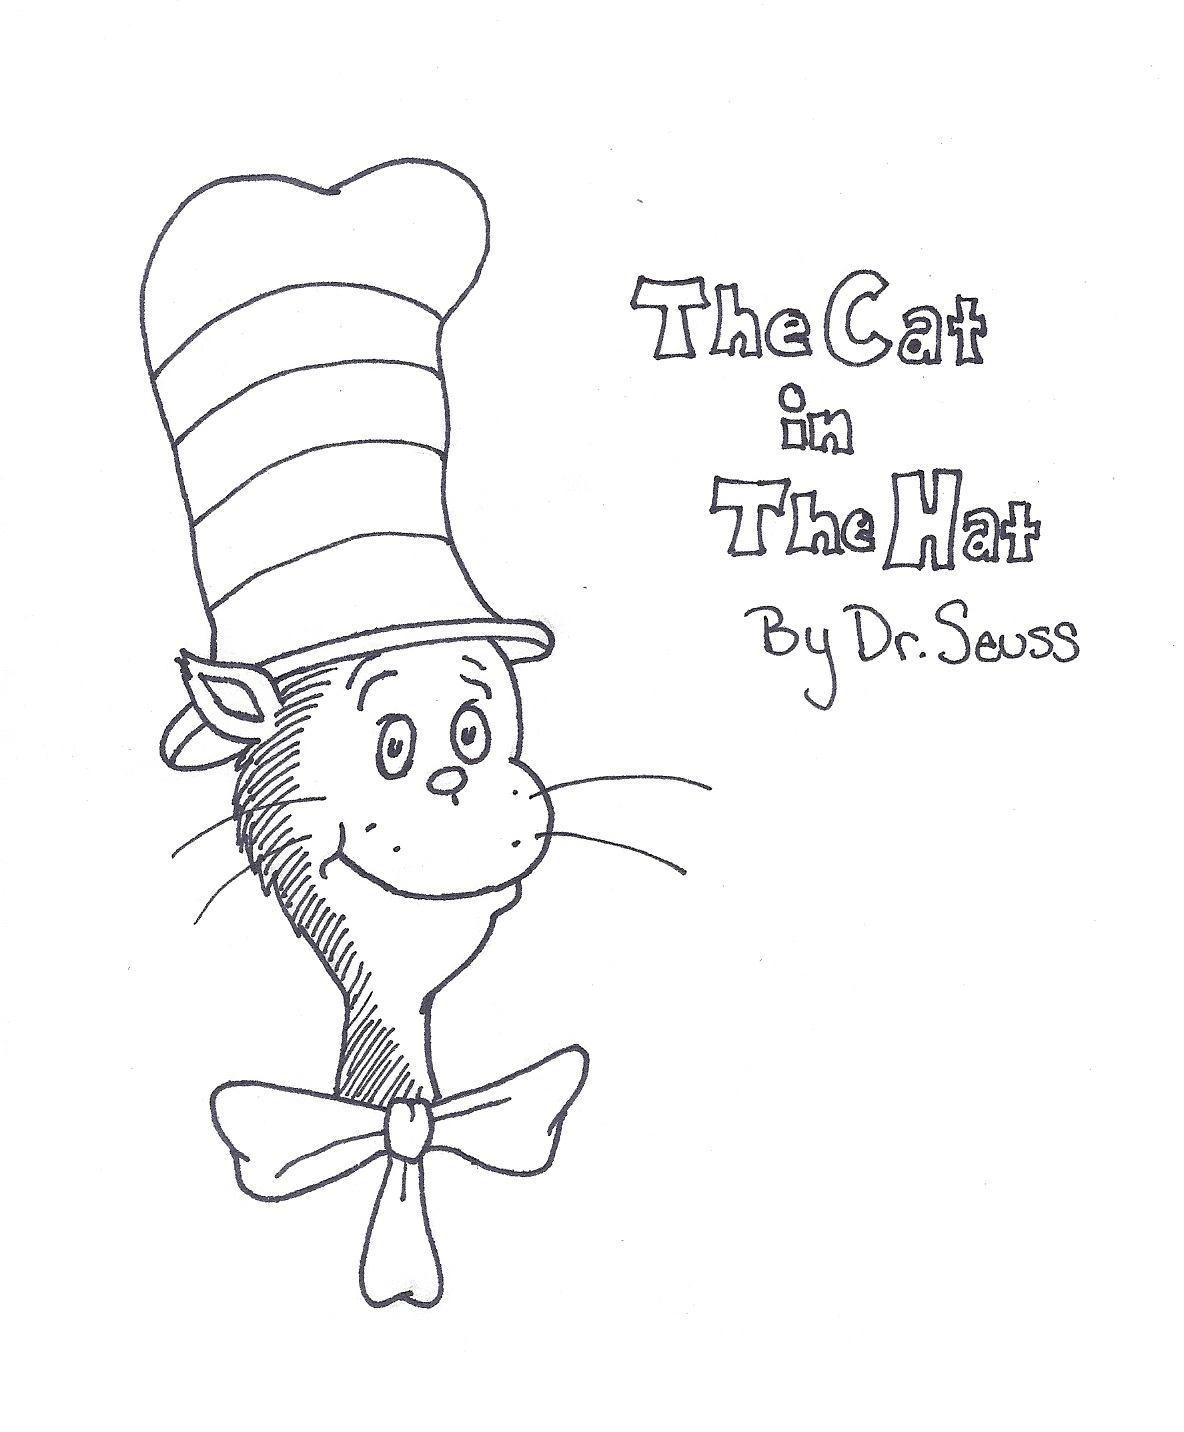 Printable dr seuss quotes templates quotesgram for Dr seuss character coloring pages